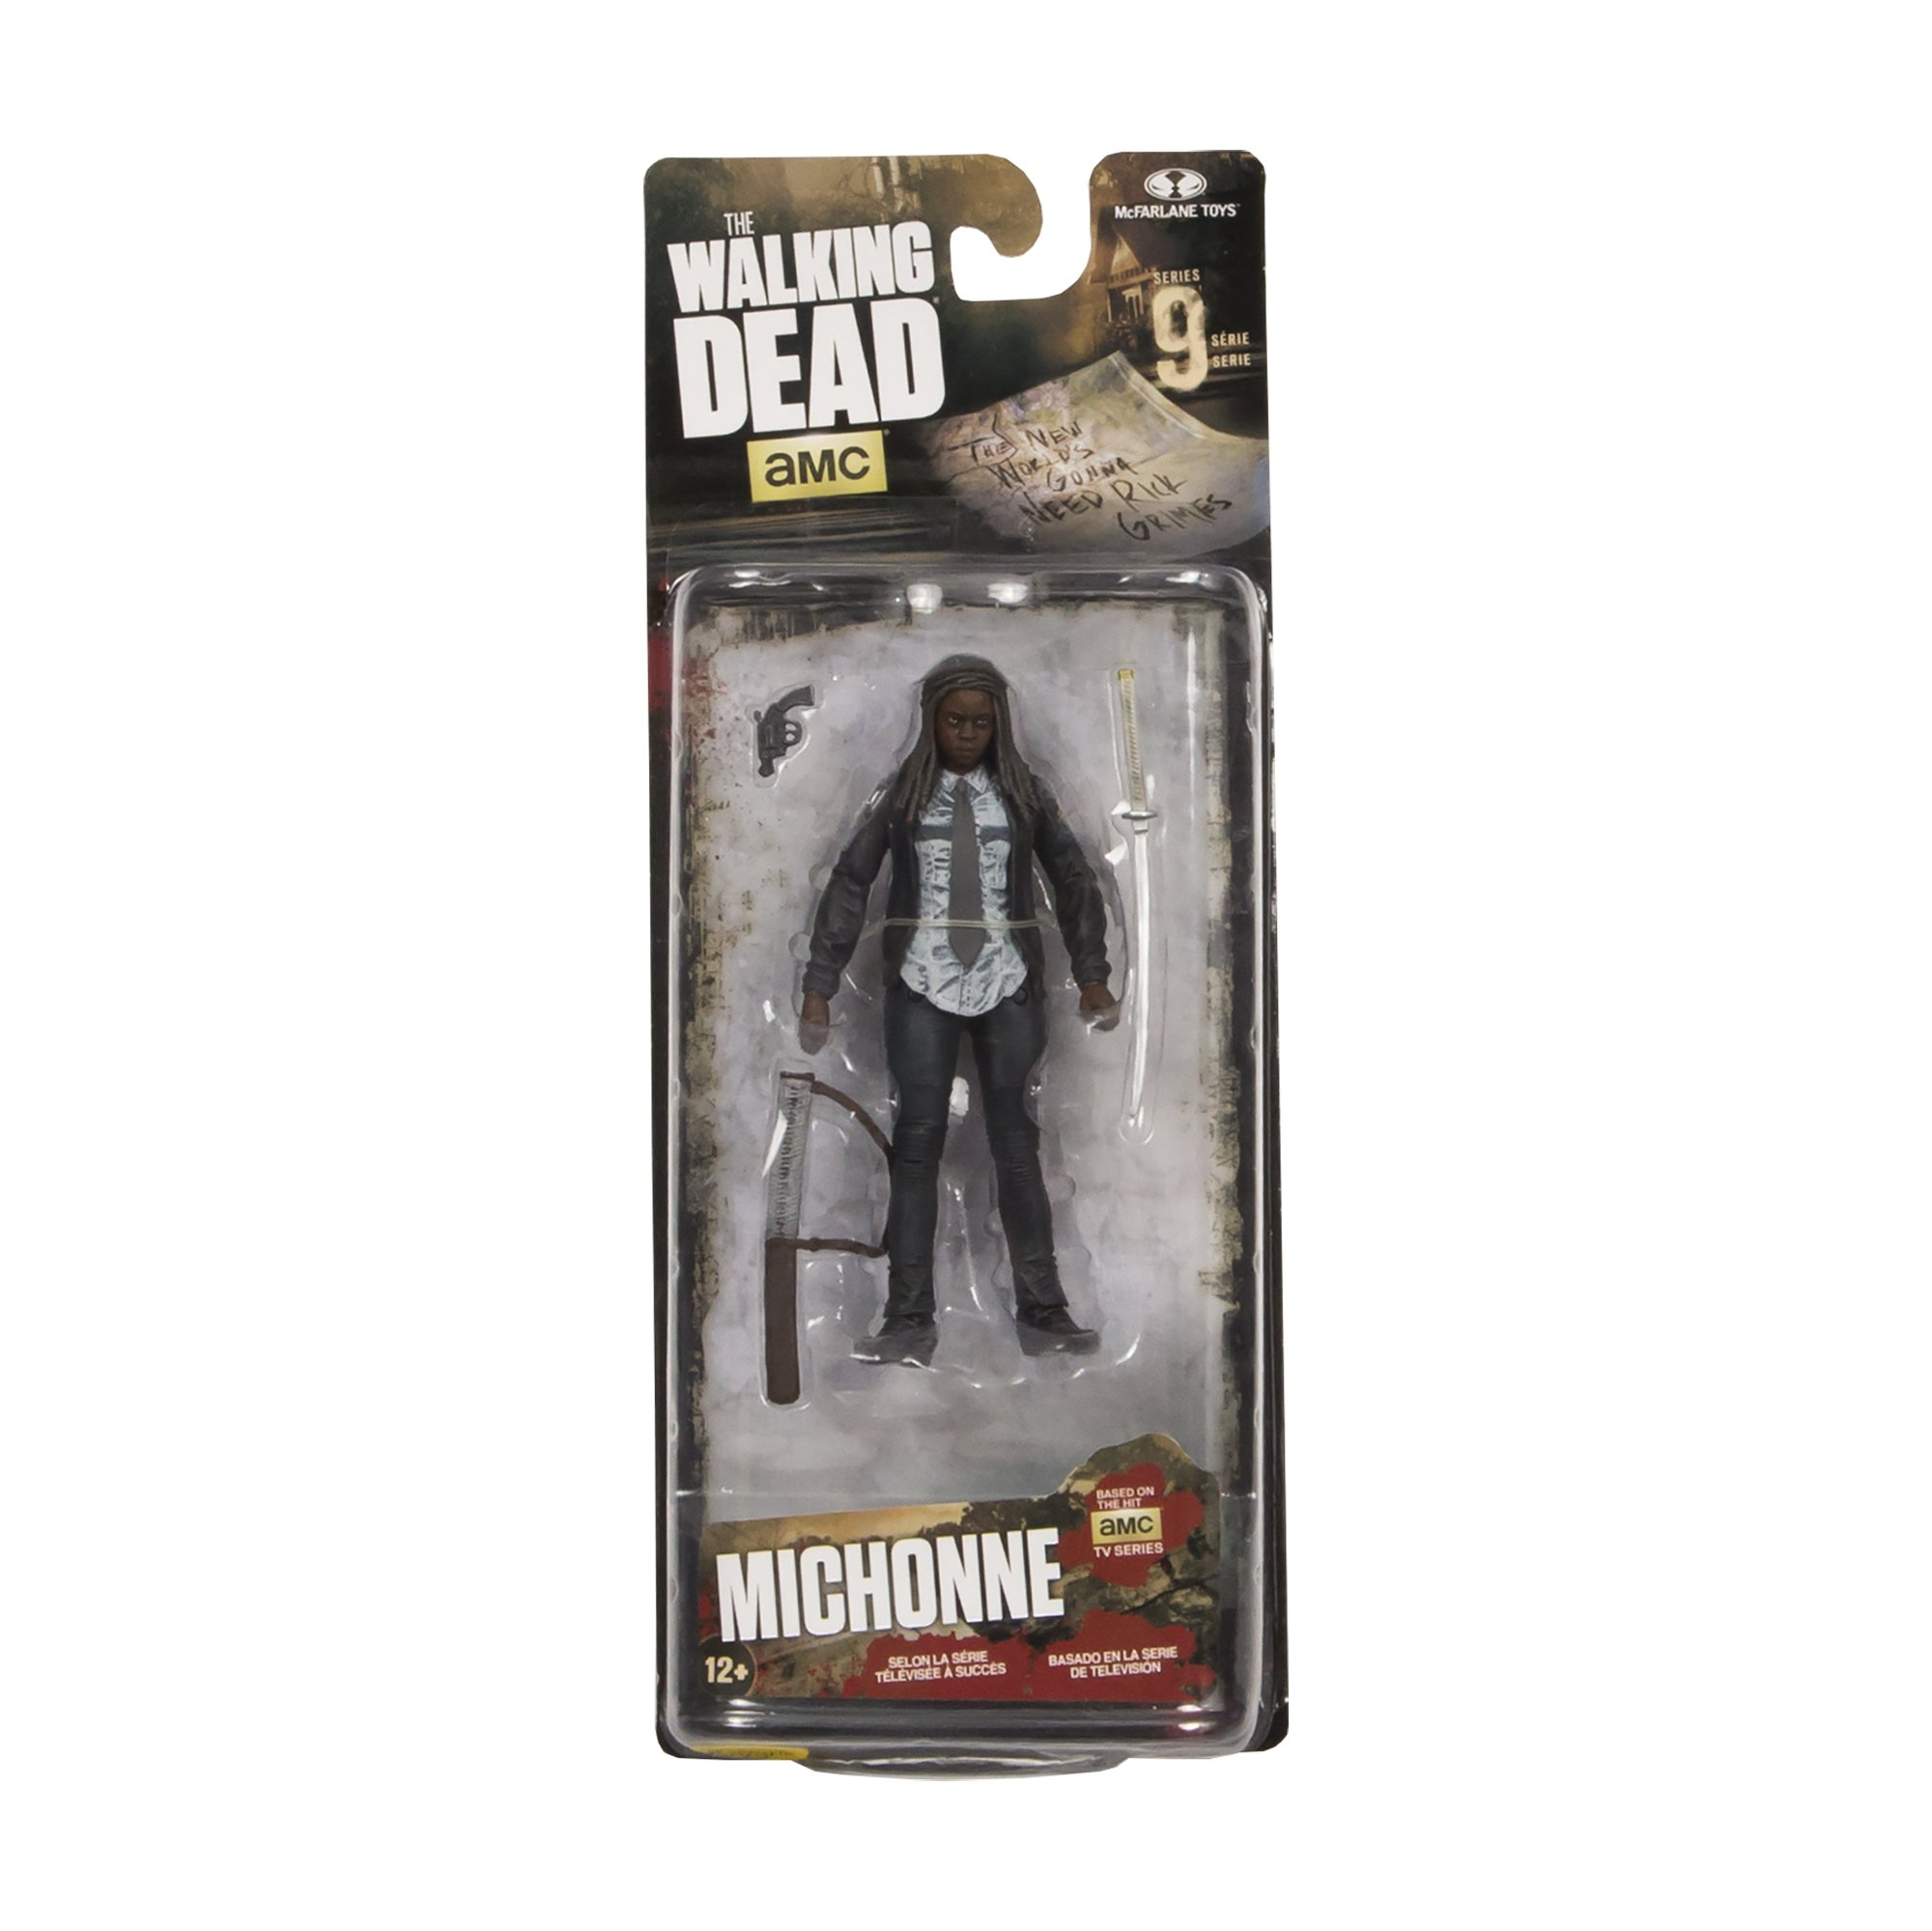 Mcf-the Walking Dead Tv Series 9 Constable Michonne [6 Inch Figure] (TMP International Inc)